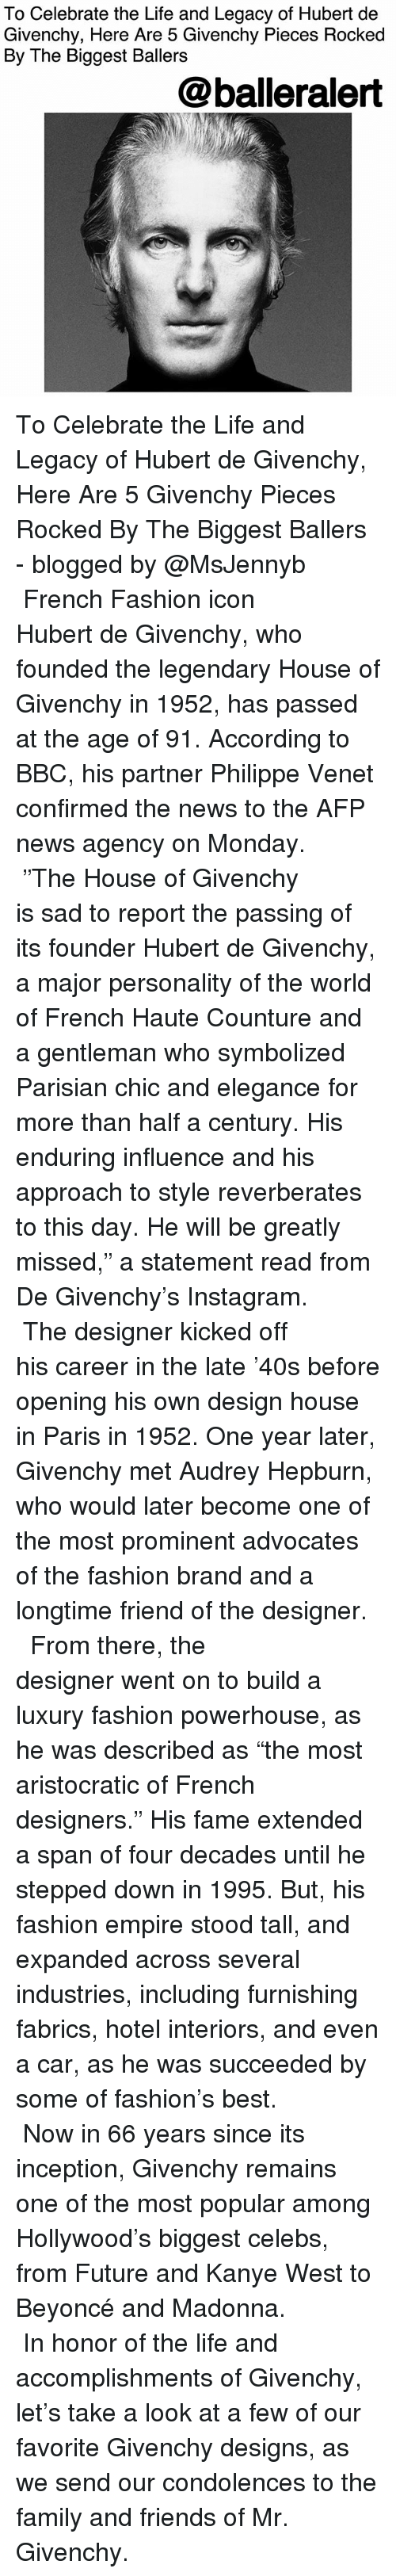 """Beyonce, Empire, and Family: To Celebrate the Life and Legacy of Hubert de  Givenchy, Here Are 5 Givenchy Pieces Rocked  By The Biggest Ballers  @balleralert To Celebrate the Life and Legacy of Hubert de Givenchy, Here Are 5 Givenchy Pieces Rocked By The Biggest Ballers - blogged by @MsJennyb ⠀⠀⠀⠀⠀⠀⠀⠀⠀ ⠀⠀⠀⠀⠀⠀⠀⠀⠀ French Fashion icon Hubert de Givenchy, who founded the legendary House of Givenchy in 1952, has passed at the age of 91. According to BBC, his partner Philippe Venet confirmed the news to the AFP news agency on Monday. ⠀⠀⠀⠀⠀⠀⠀⠀⠀ ⠀⠀⠀⠀⠀⠀⠀⠀⠀ """"The House of Givenchy is sad to report the passing of its founder Hubert de Givenchy, a major personality of the world of French Haute Counture and a gentleman who symbolized Parisian chic and elegance for more than half a century. His enduring influence and his approach to style reverberates to this day. He will be greatly missed,"""" a statement read from De Givenchy's Instagram. ⠀⠀⠀⠀⠀⠀⠀⠀⠀ ⠀⠀⠀⠀⠀⠀⠀⠀⠀ The designer kicked off his career in the late '40s before opening his own design house in Paris in 1952. One year later, Givenchy met Audrey Hepburn, who would later become one of the most prominent advocates of the fashion brand and a longtime friend of the designer. ⠀⠀⠀⠀⠀⠀⠀⠀⠀ ⠀⠀⠀⠀⠀⠀⠀⠀⠀ From there, the designer went on to build a luxury fashion powerhouse, as he was described as """"the most aristocratic of French designers."""" His fame extended a span of four decades until he stepped down in 1995. But, his fashion empire stood tall, and expanded across several industries, including furnishing fabrics, hotel interiors, and even a car, as he was succeeded by some of fashion's best. ⠀⠀⠀⠀⠀⠀⠀⠀⠀ ⠀⠀⠀⠀⠀⠀⠀⠀⠀ Now in 66 years since its inception, Givenchy remains one of the most popular among Hollywood's biggest celebs, from Future and Kanye West to Beyoncé and Madonna. ⠀⠀⠀⠀⠀⠀⠀⠀⠀ ⠀⠀⠀⠀⠀⠀⠀⠀⠀ In honor of the life and accomplishments of Givenchy, let's take a look at a few of our favorite Givenchy designs, as we send our condolences to the fami"""